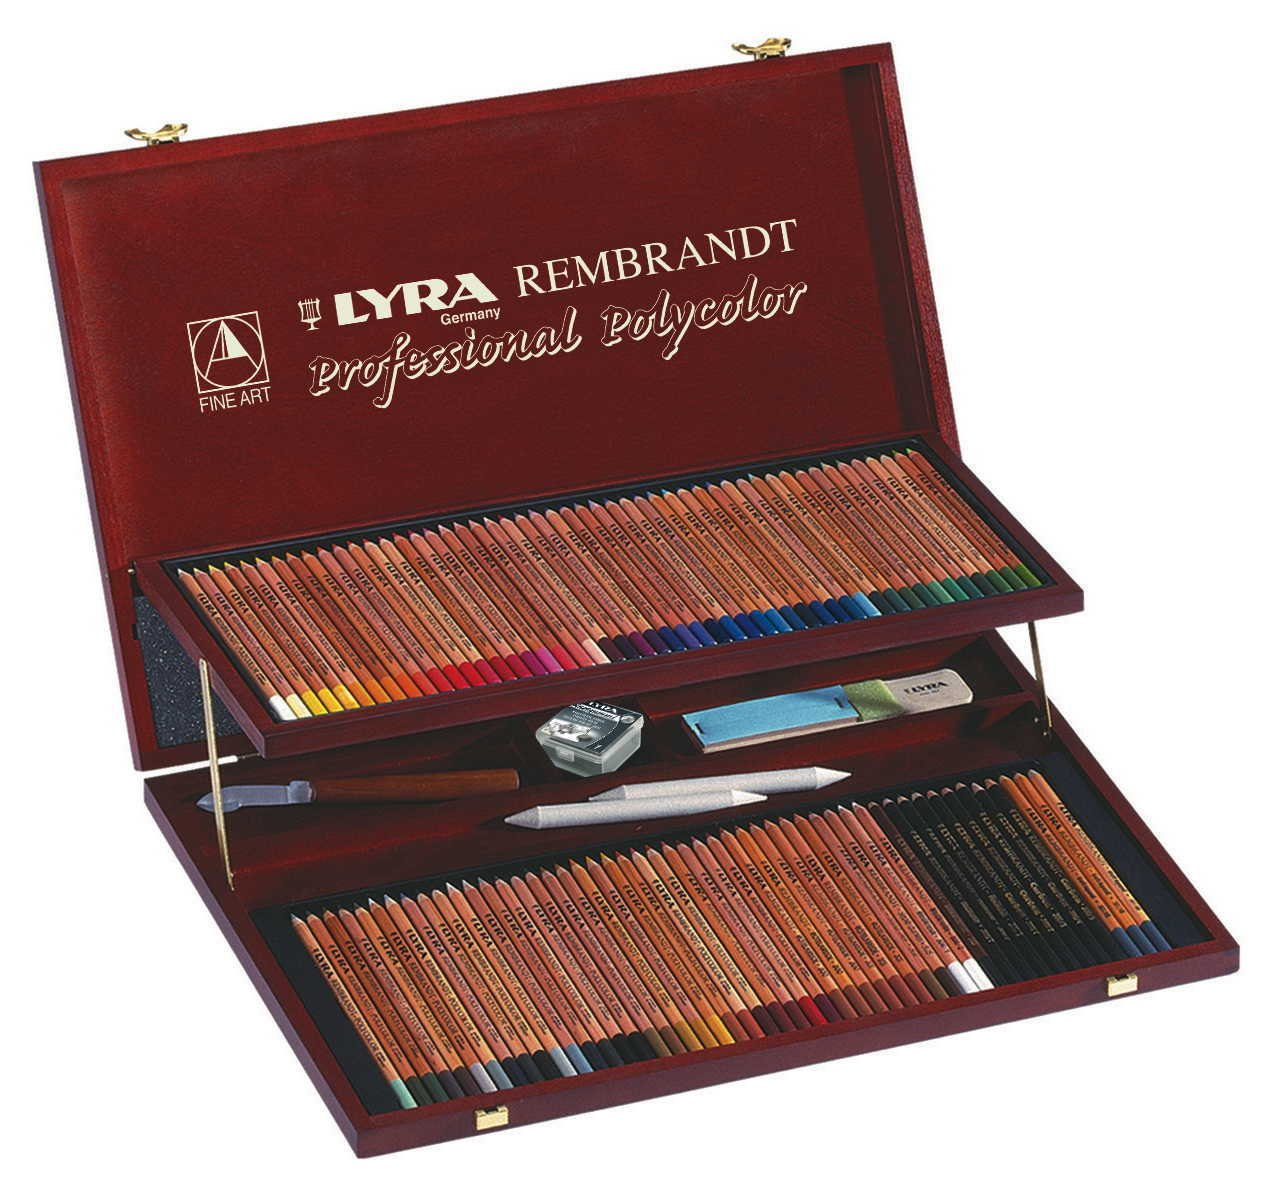 LYRA Rembrandt Polycolor Art Pencils, Set of 100 Pencils Plus Accessories, Assorted Colors (2004200)